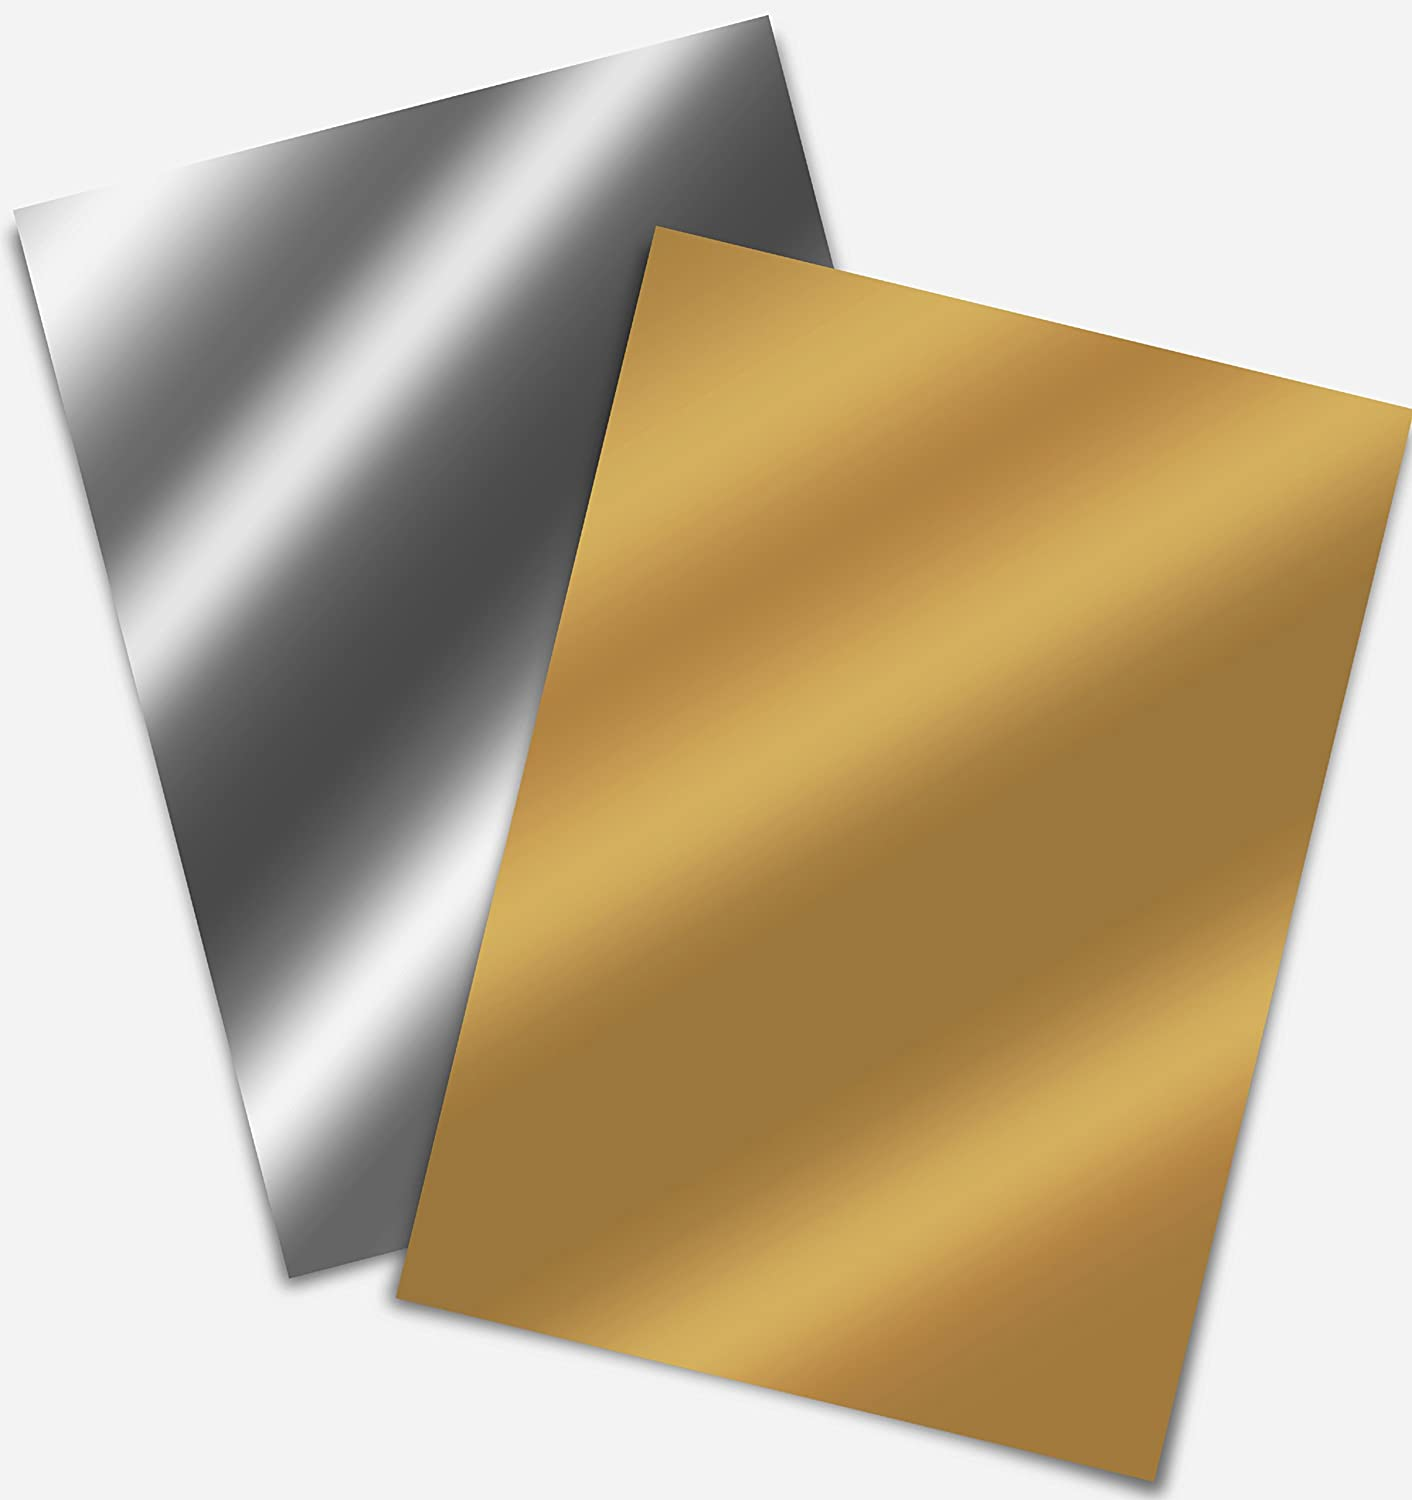 Firefly Craft 熱転写ビニール シルエットとクリカットに対応 12インチ × 20インチ 2 sheets B01A81OGYQ 2 sheets Gold, Silver Gold, Silver 2 sheets